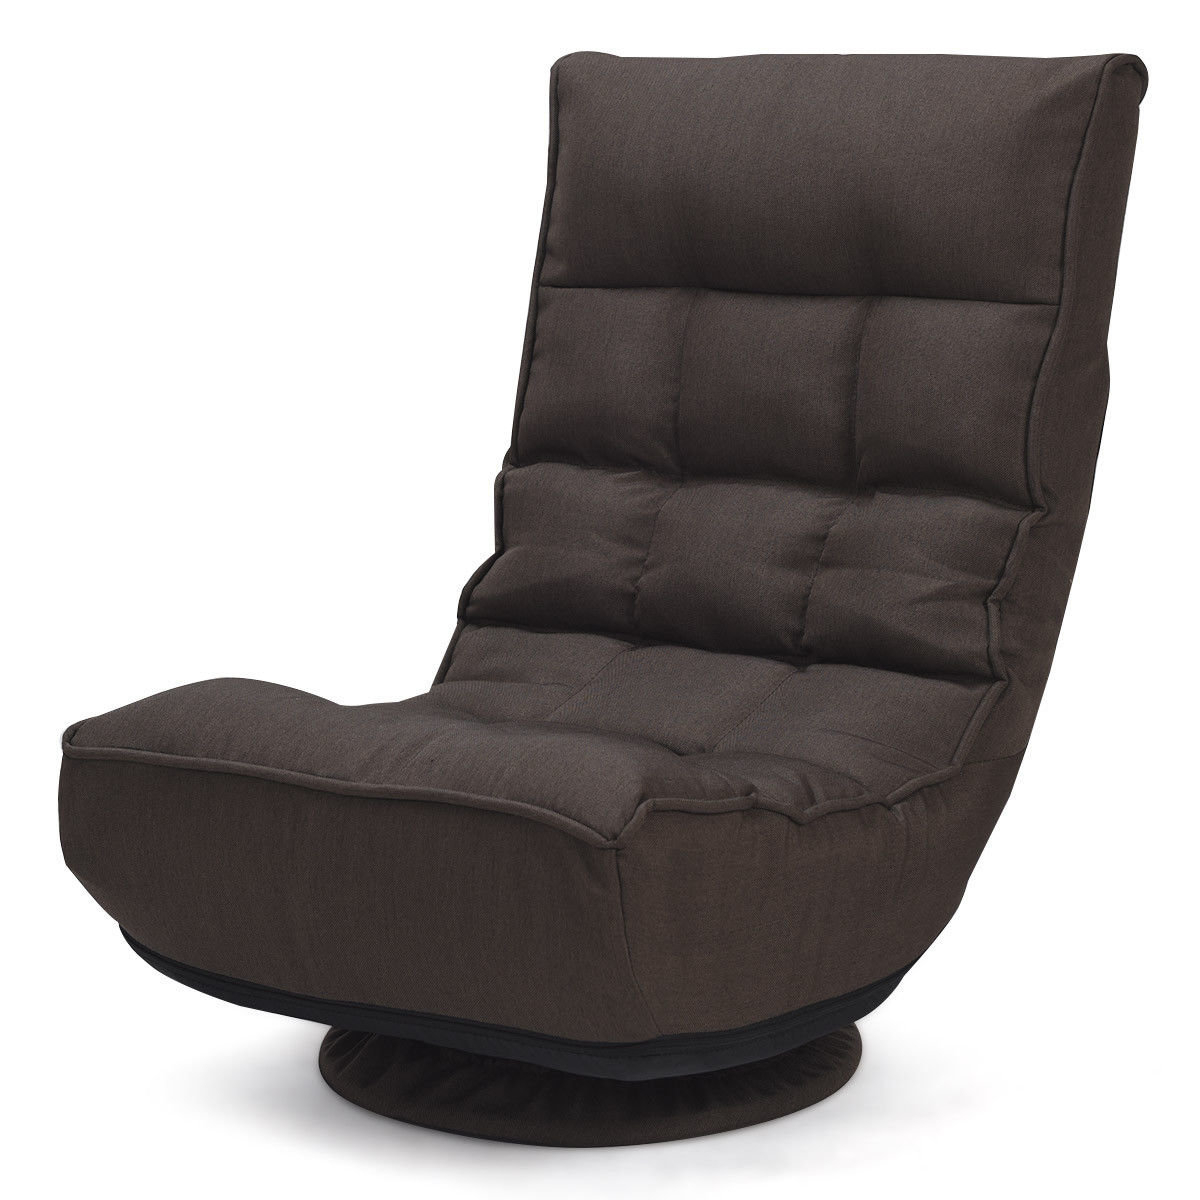 Ebern Designs Brentford Swivel Lounge Chair | Wayfair Intended For Decker Ii Fabric Swivel Rocker Recliners (Image 7 of 20)